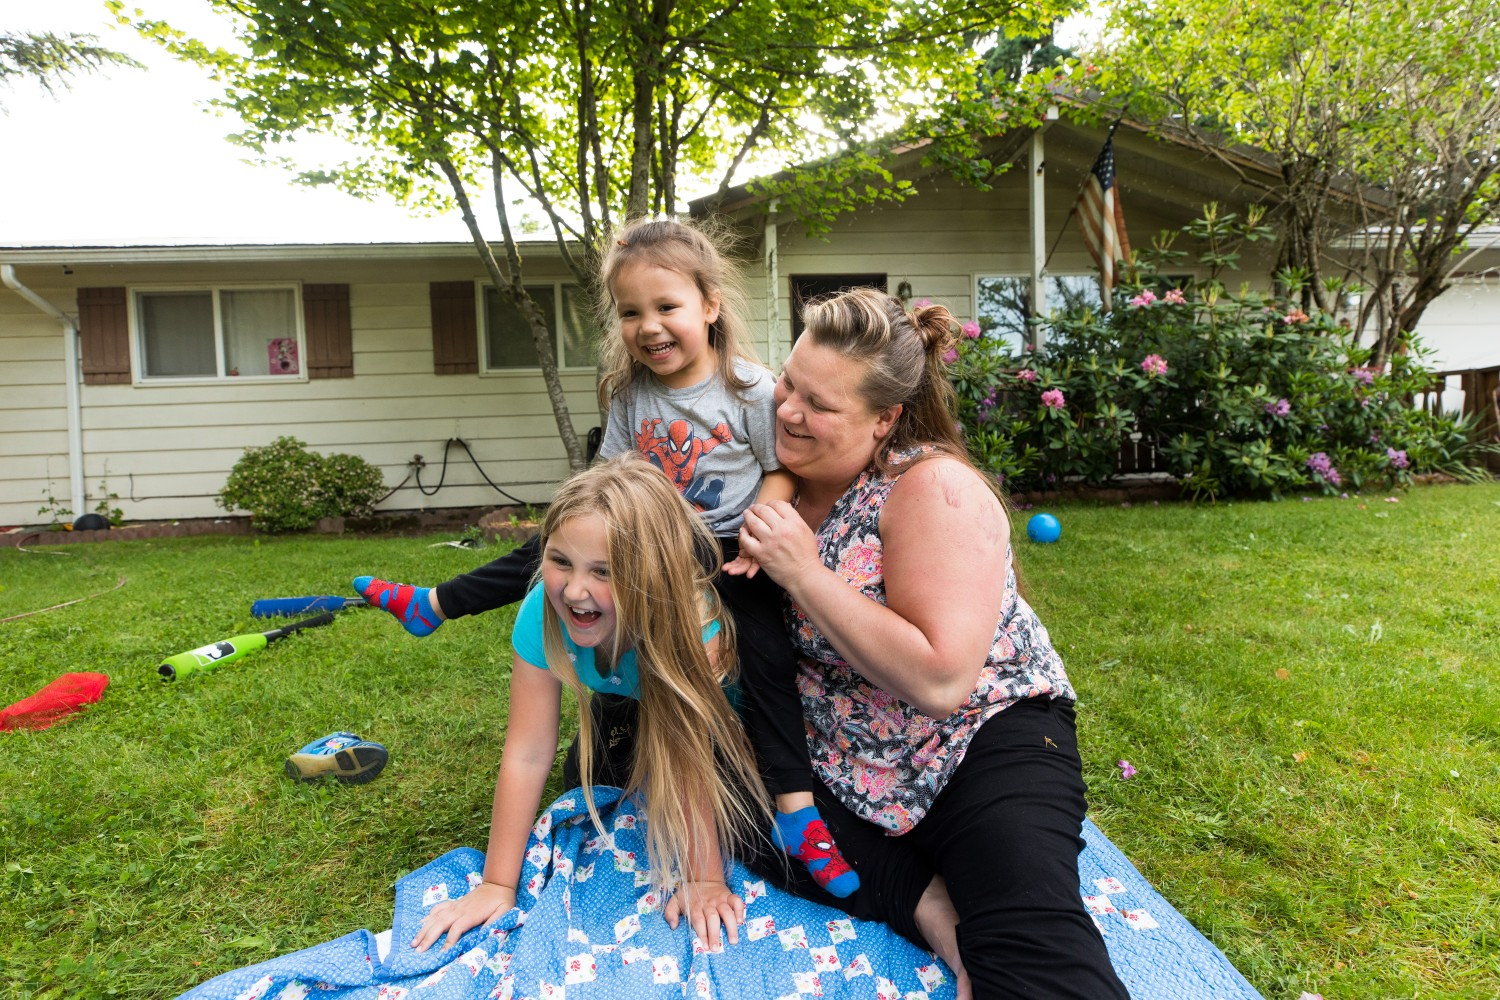 A mother playfully wrestles with her two children outside, on a residential lawn.